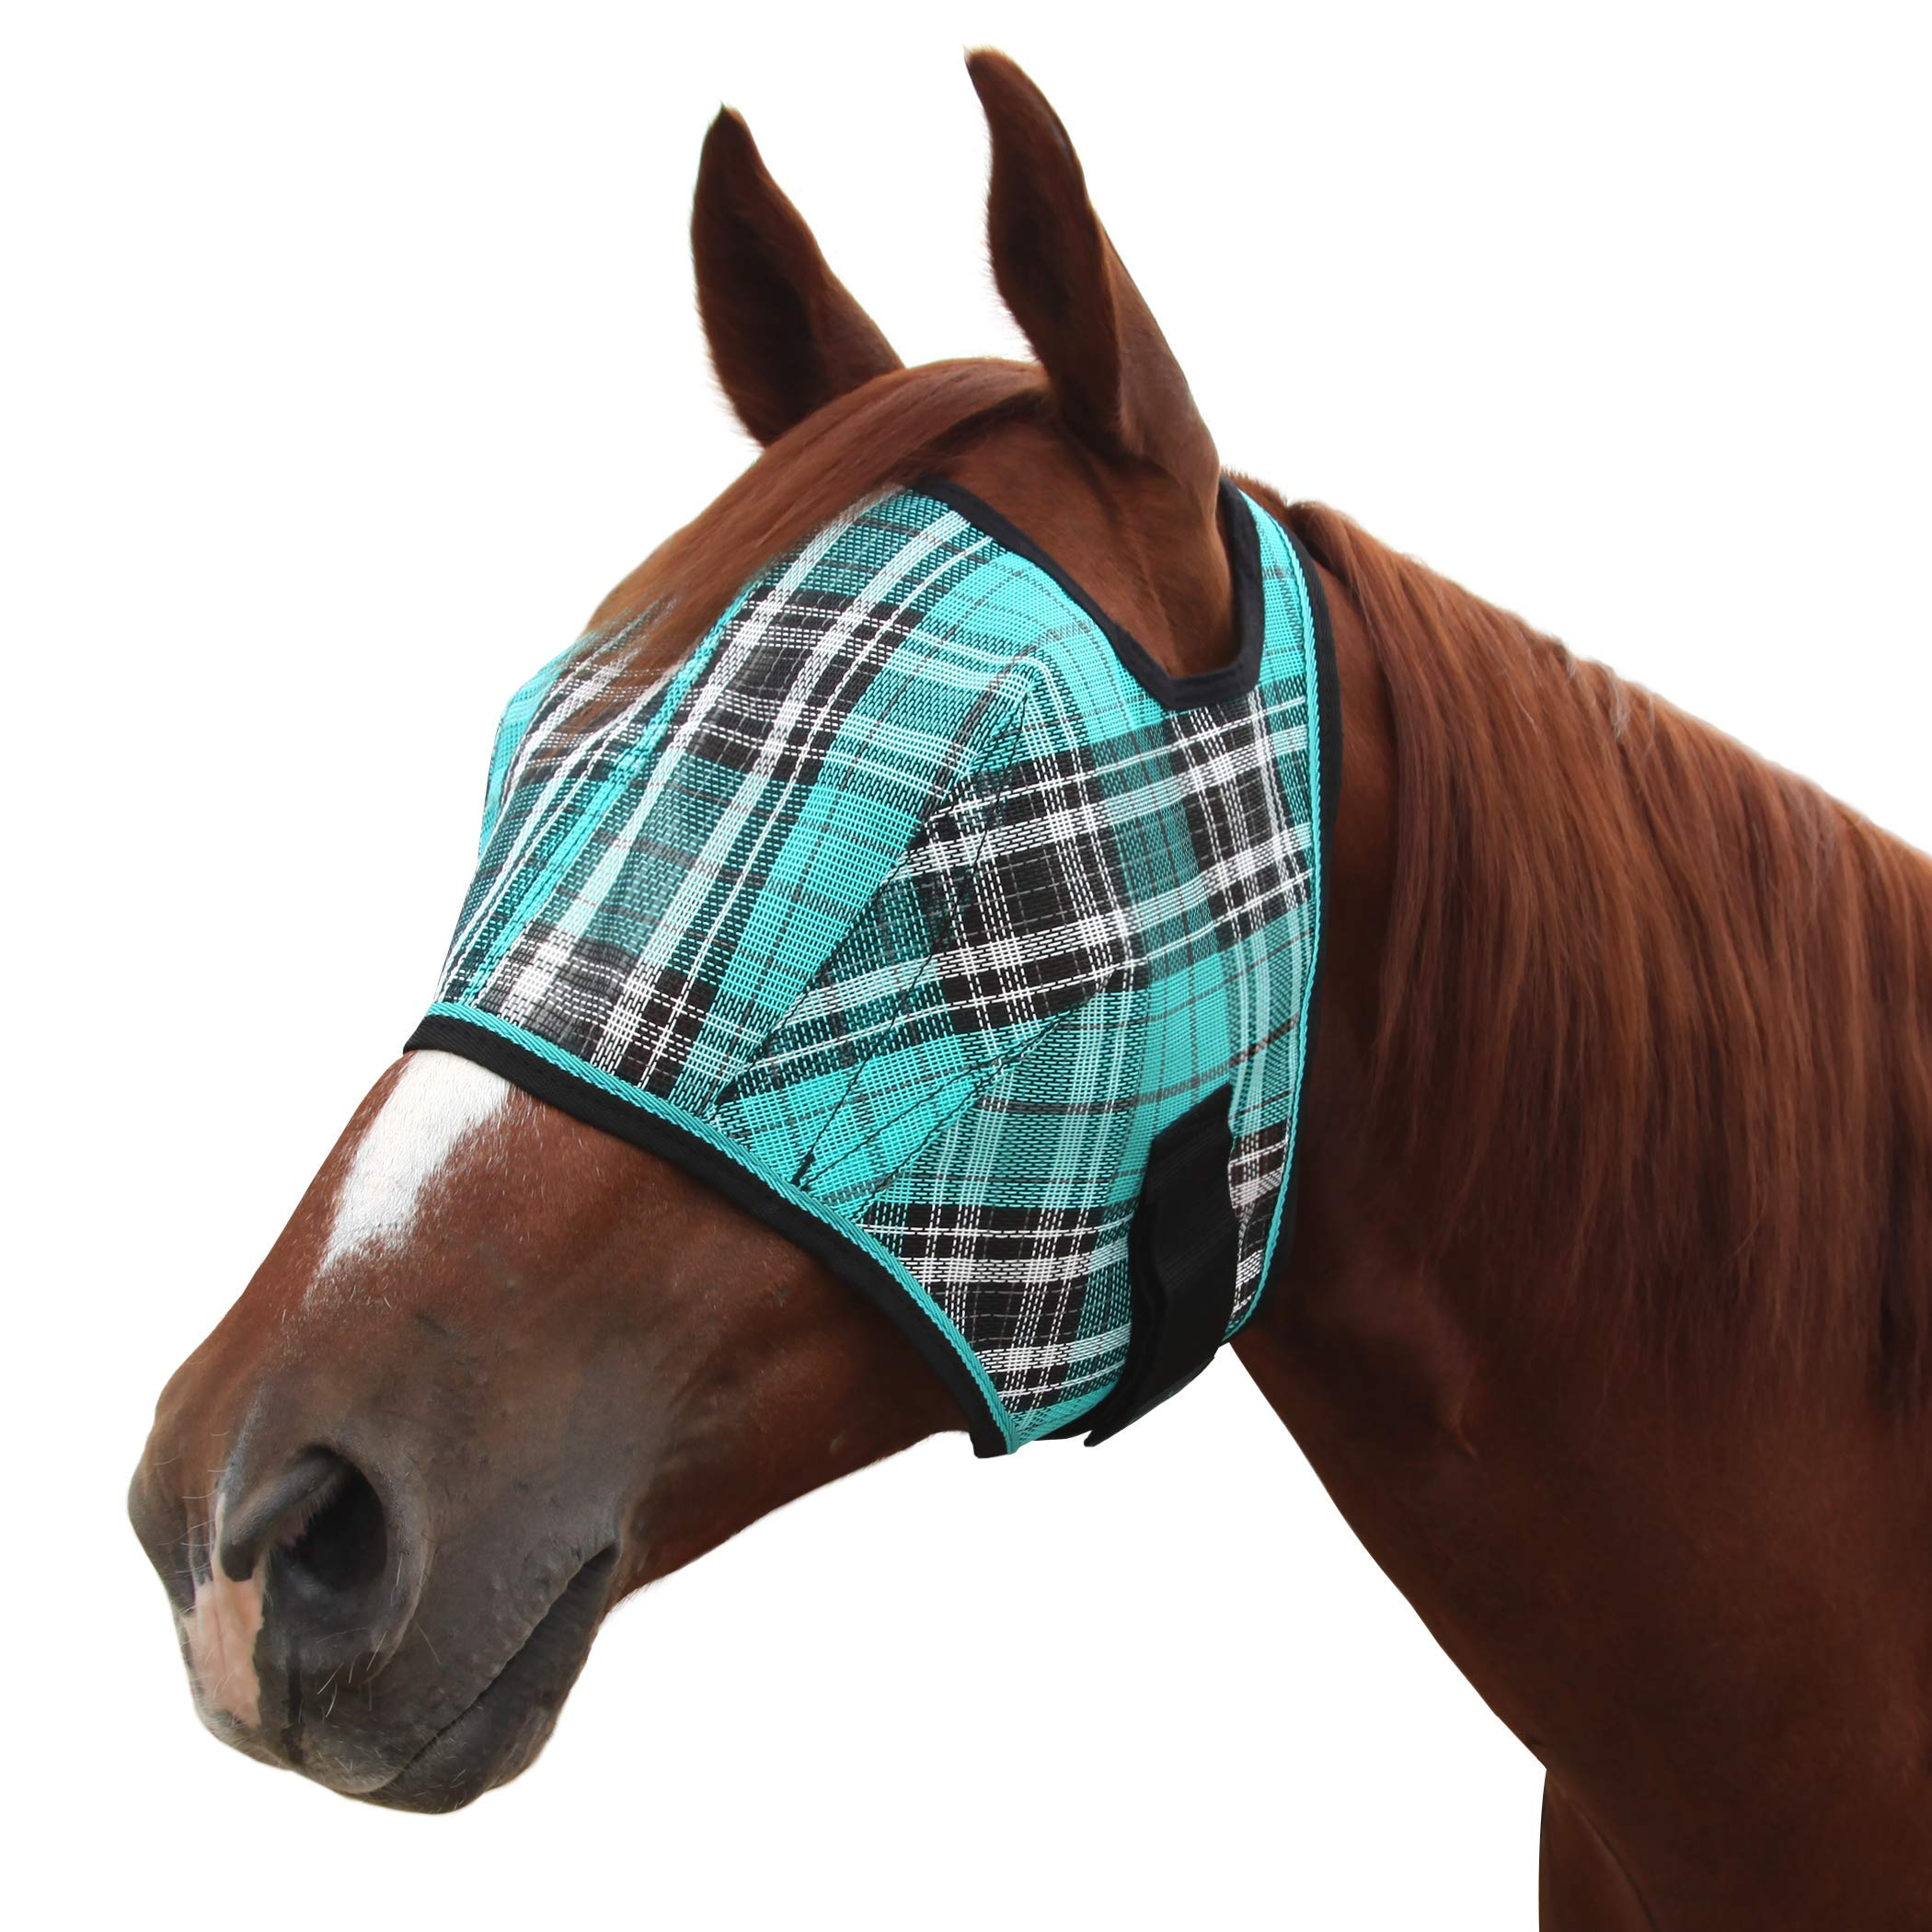 Kensington Fly Mask Web Trim - Protects Horses Face and Eyes From Biting Insects and UV Rays While Allowing Full Visibility - Ears and Forelock Able to Come Through the Mask (Medium, Black Ice)